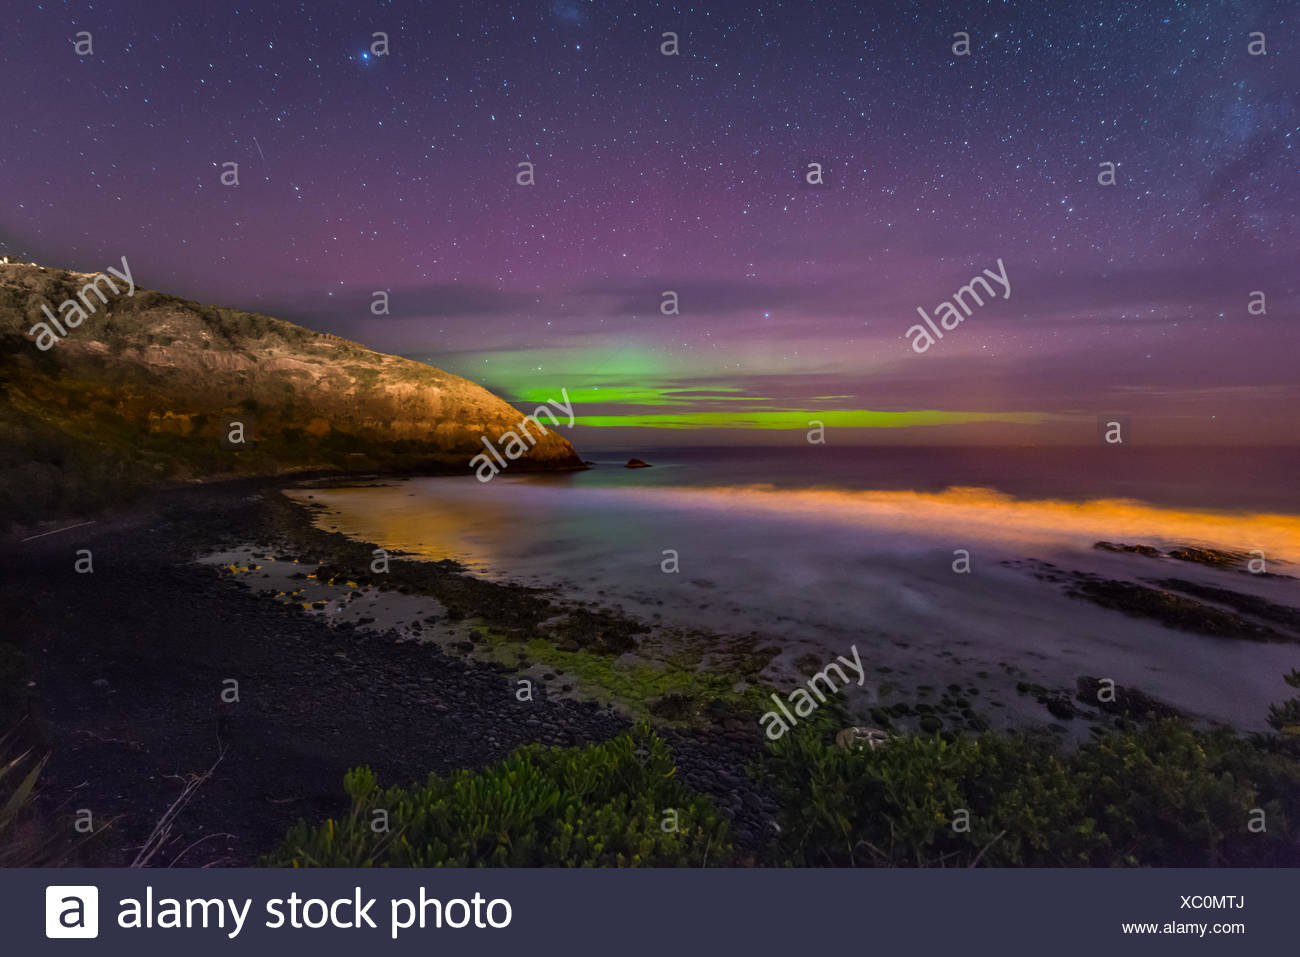 Southern lights, aurora australis over the sea, sand dunes, Second Beach, Dunedin, Otago, Southland, New Zealand Stock Photo